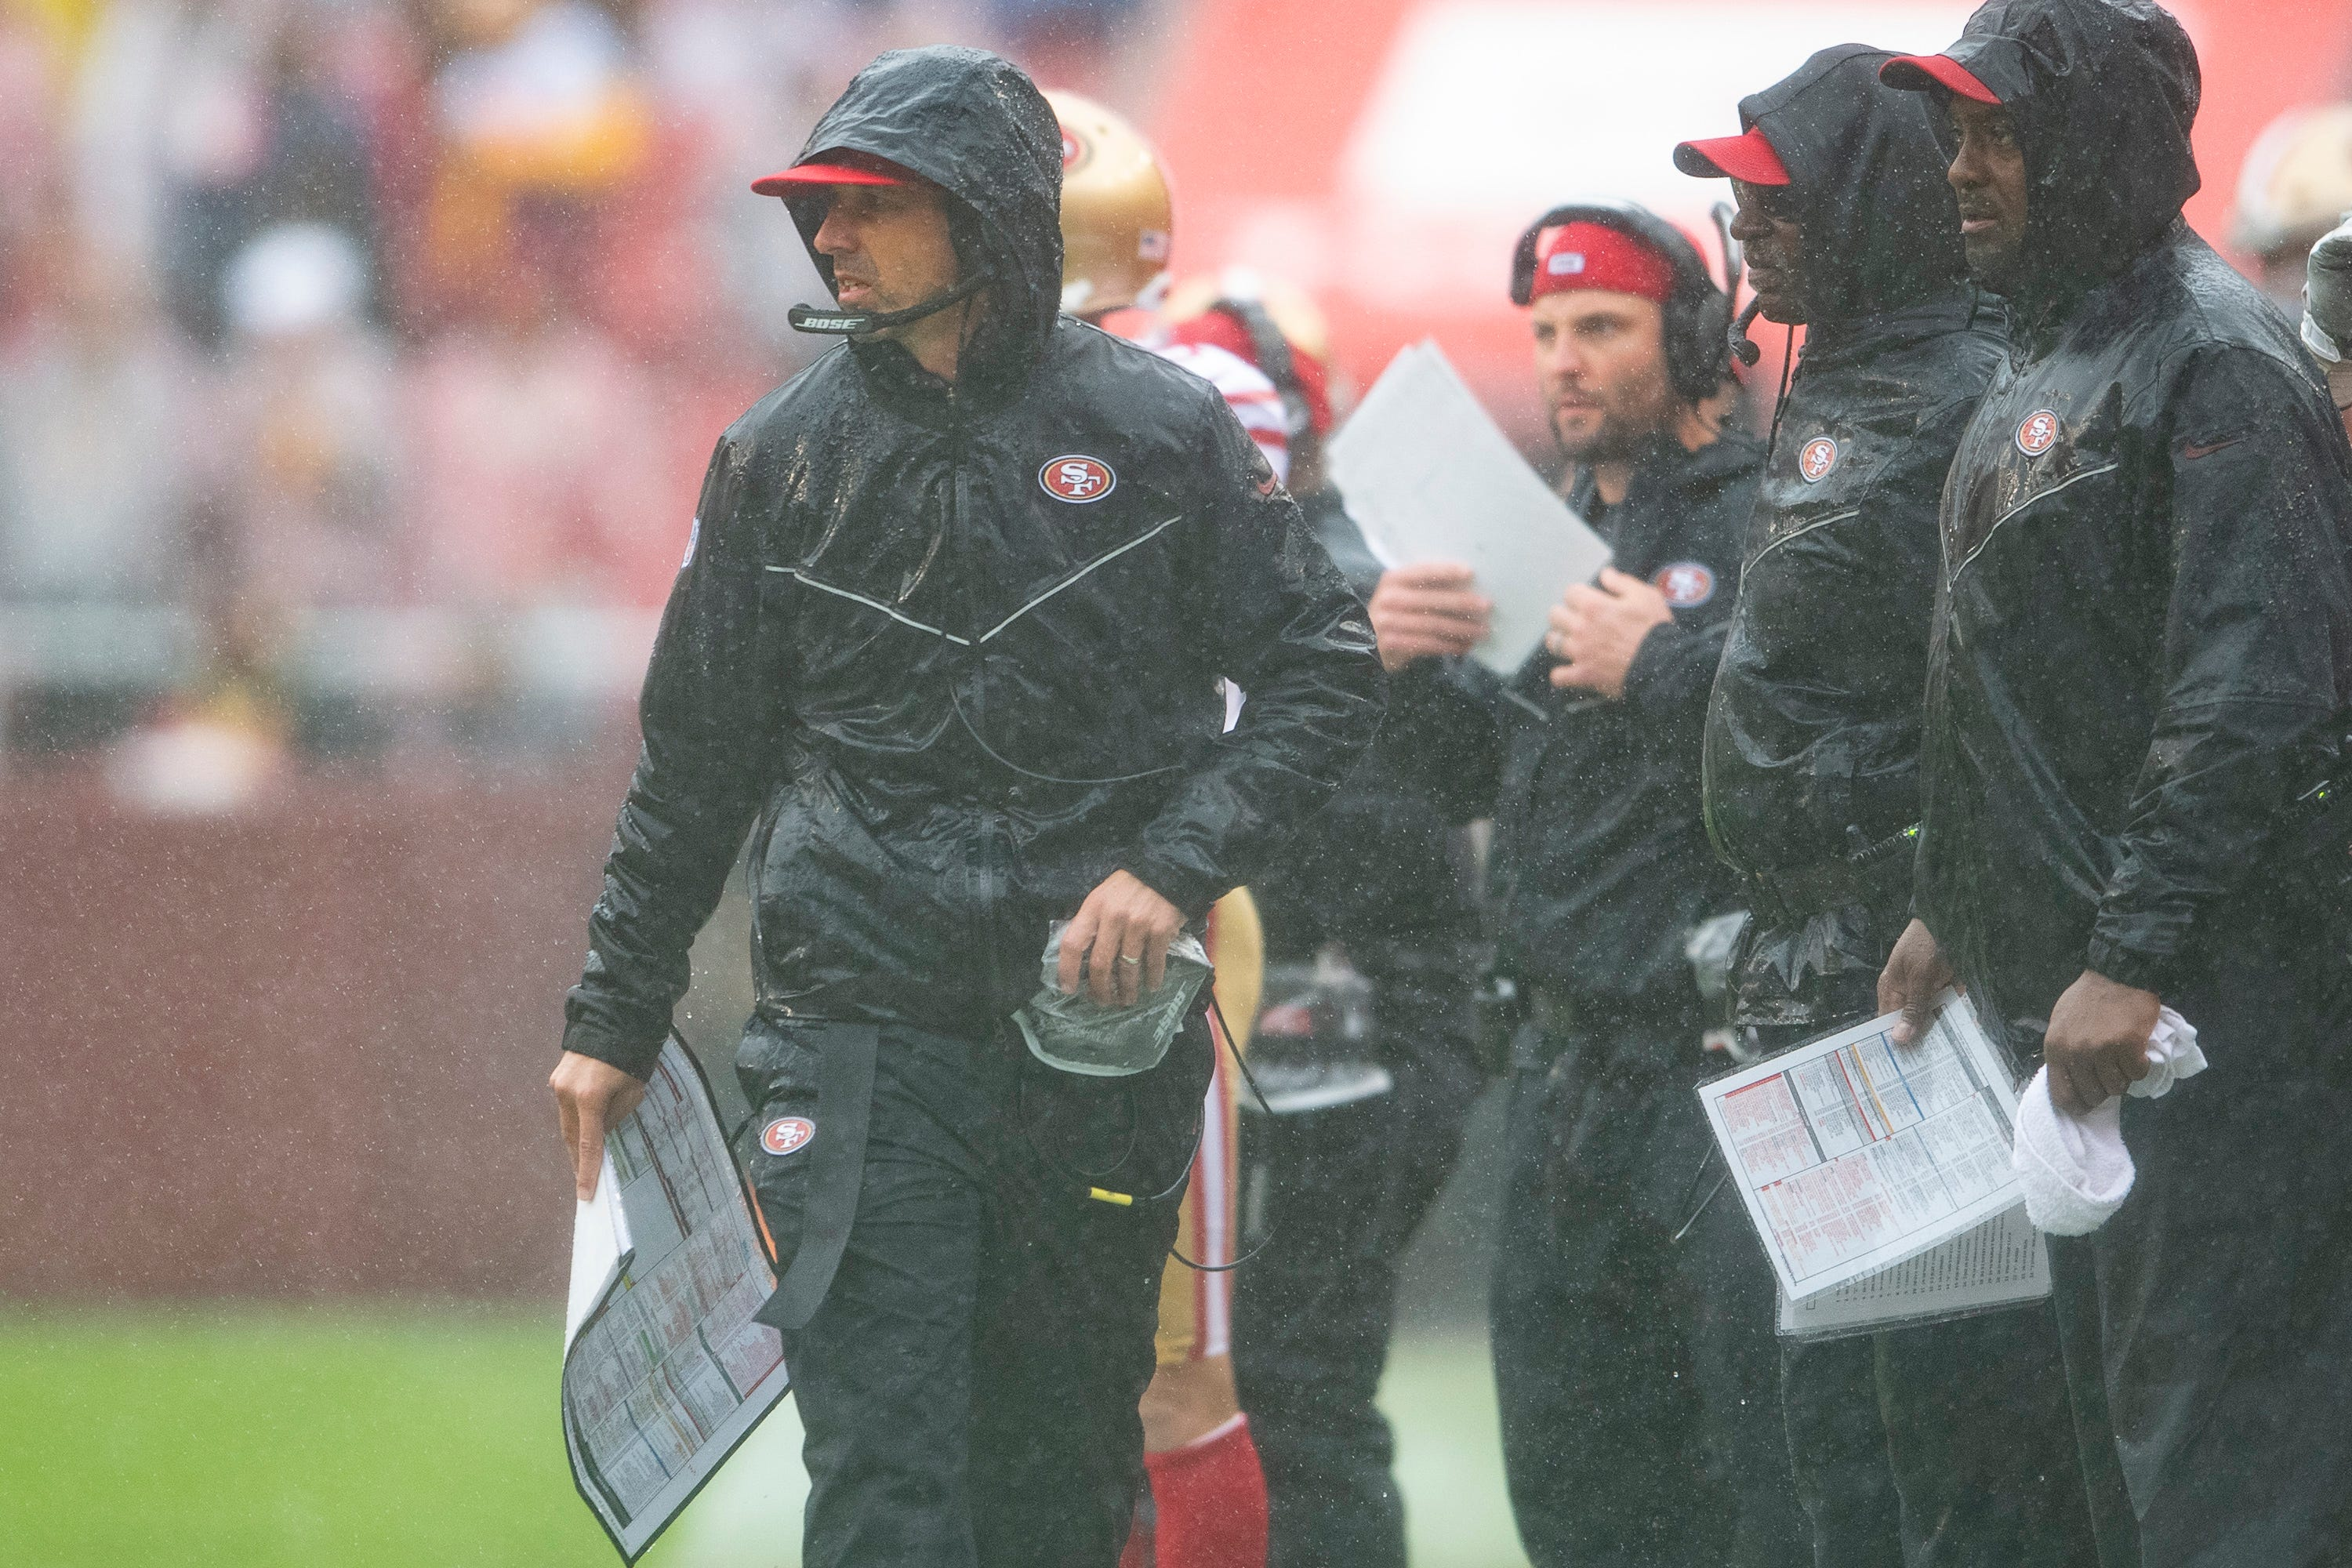 Kyle Shanahan gives game ball to Mike Shanahan after 49ers' win over Redskins